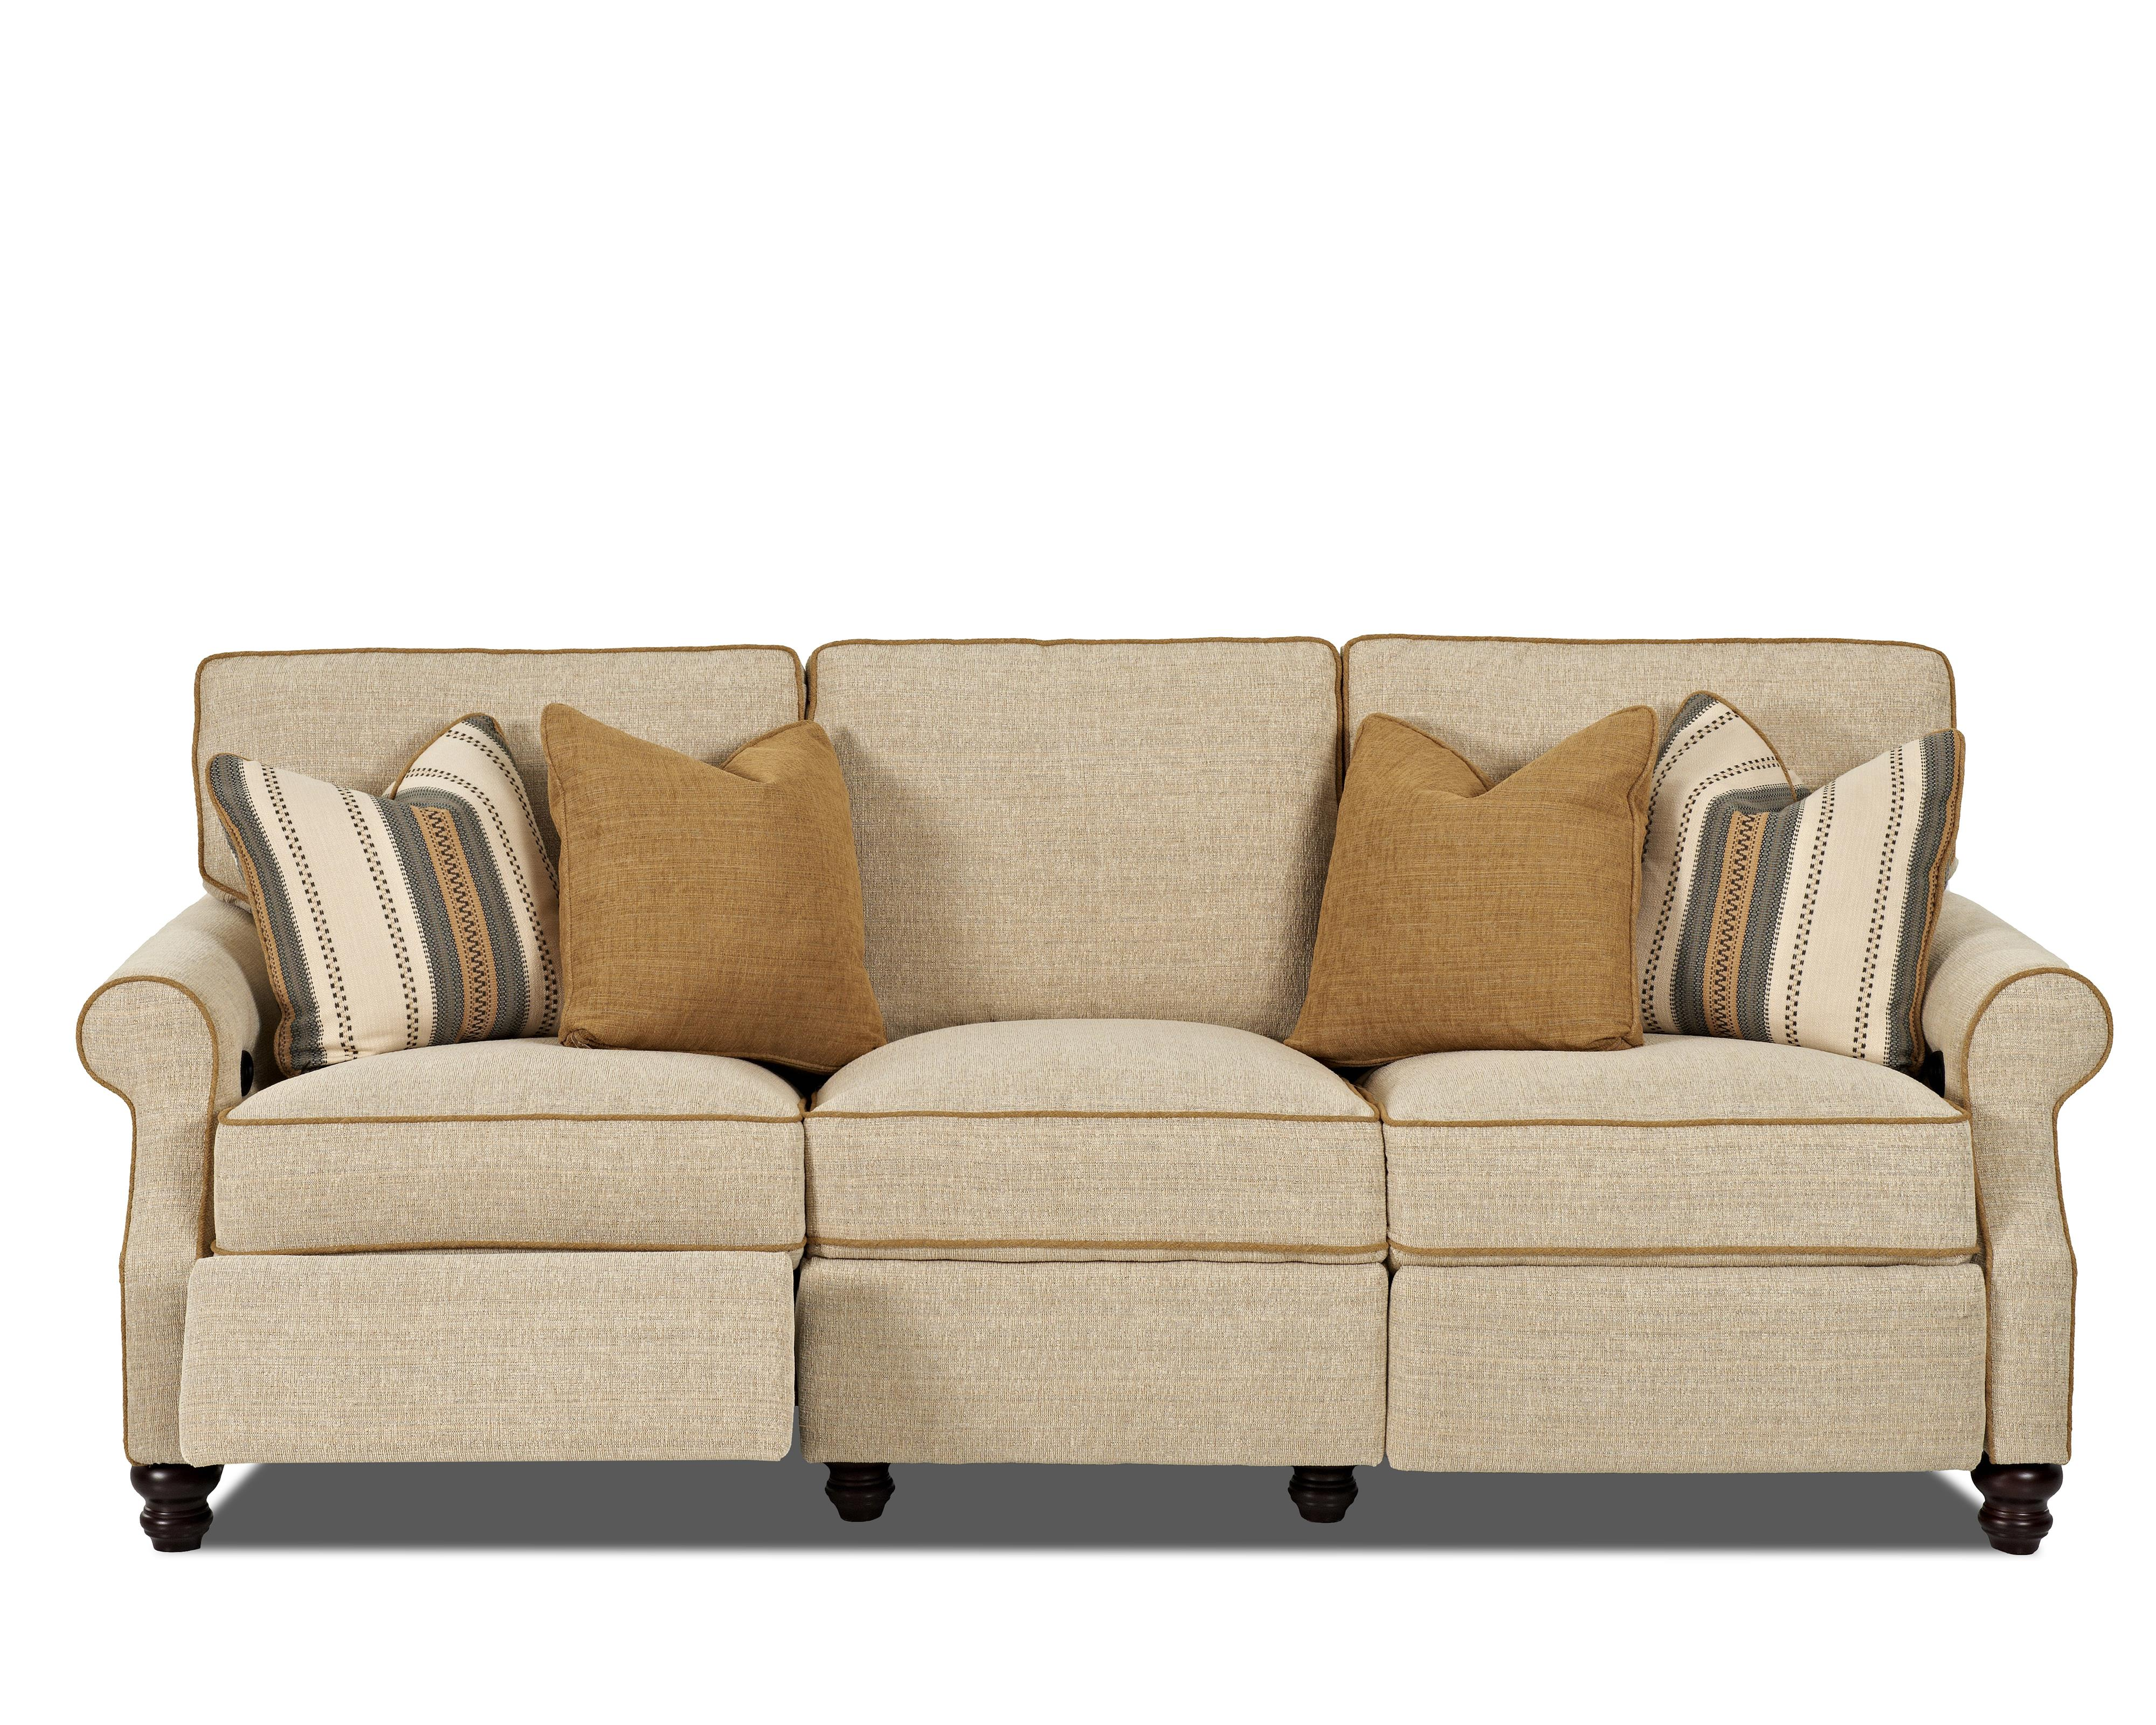 Trisha yearwood home collection by klaussner tifton for Furniture collection